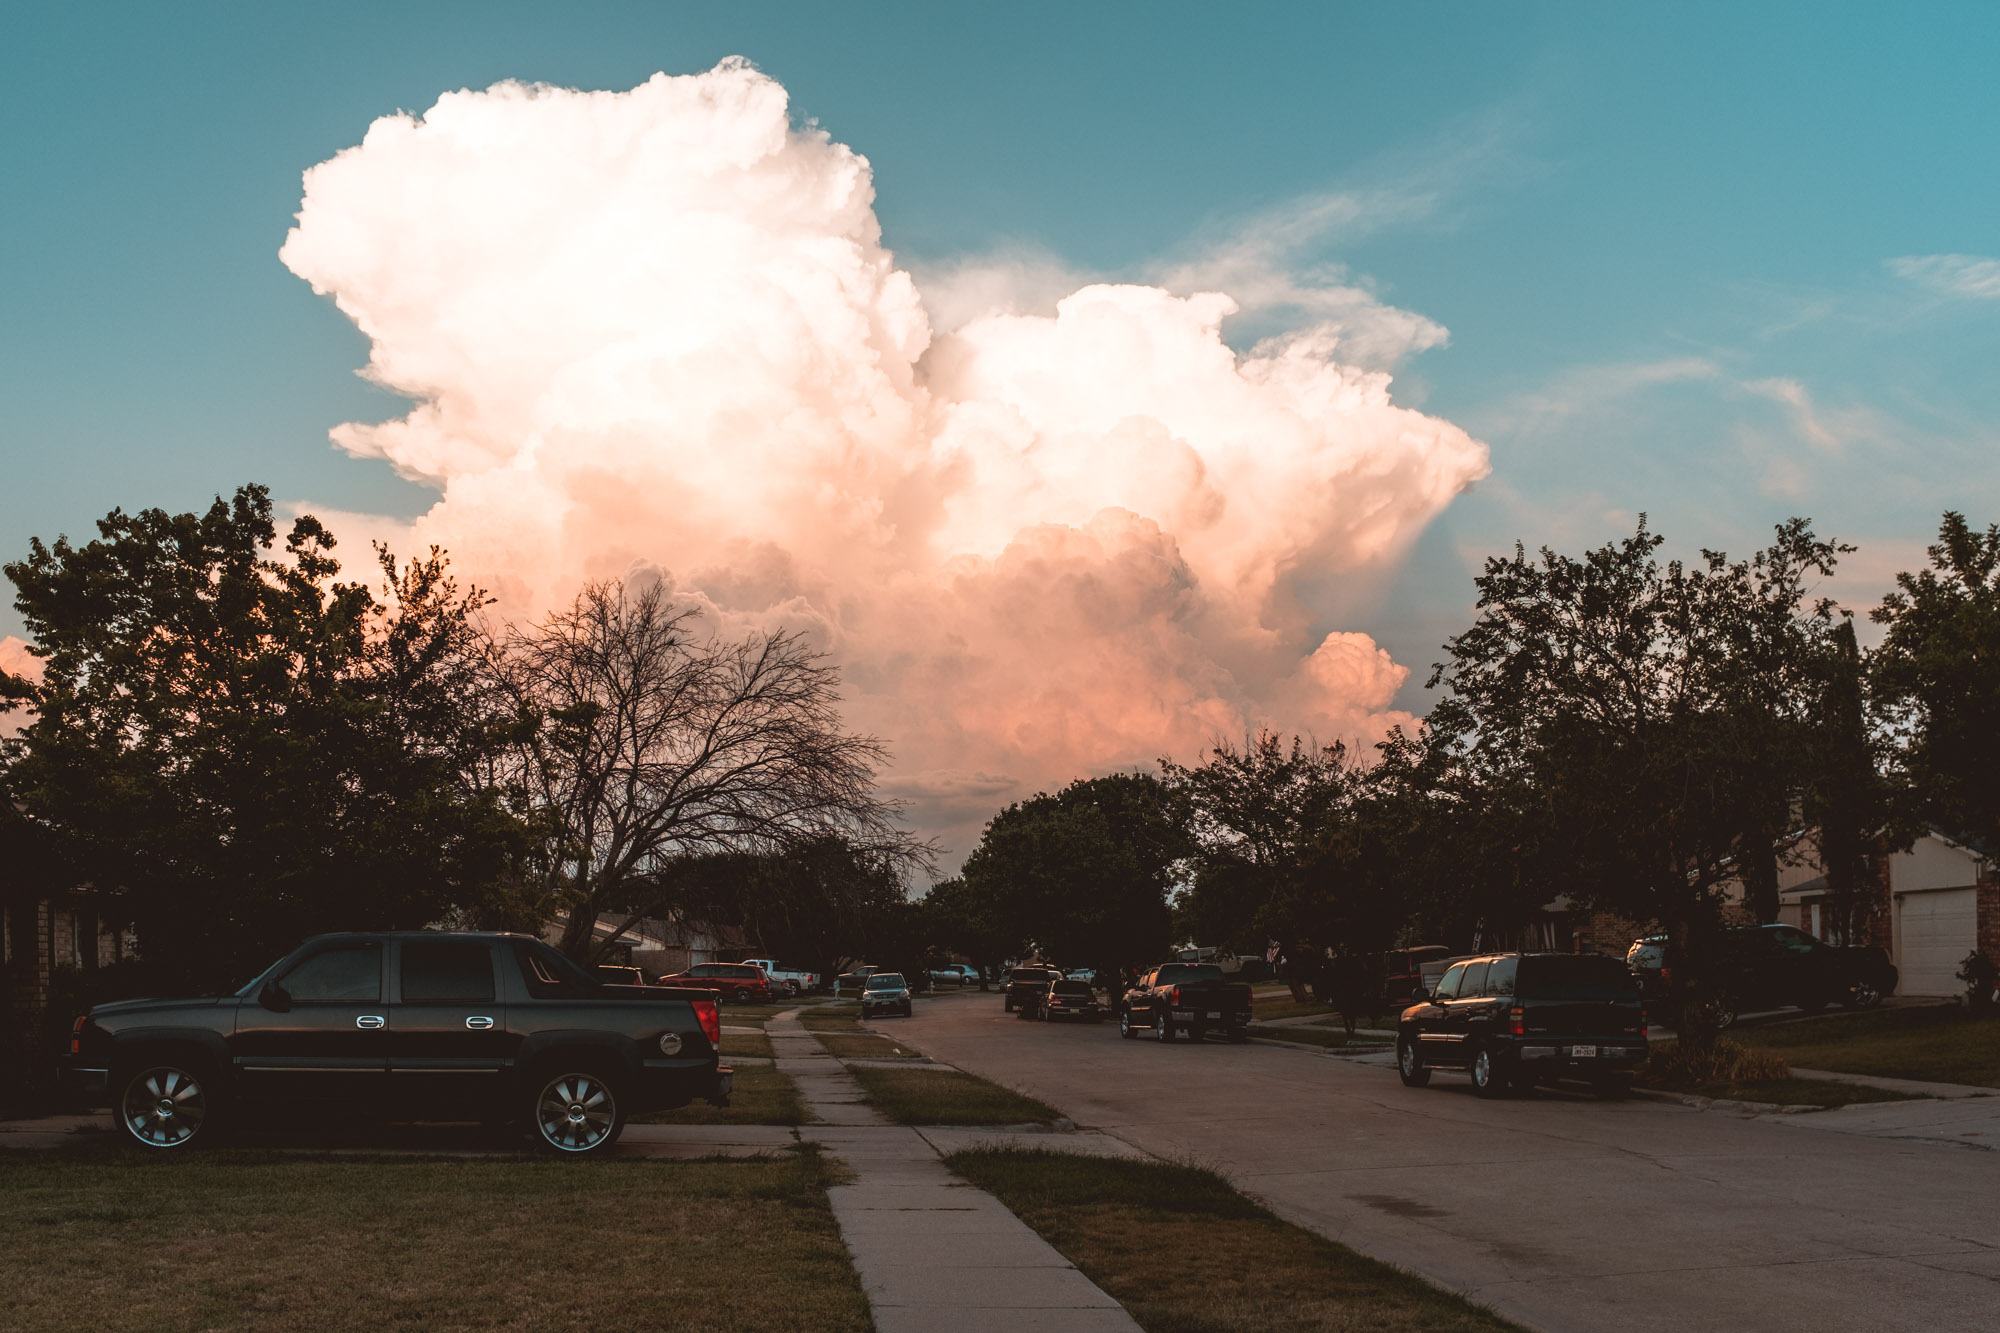 Clouds in Texas